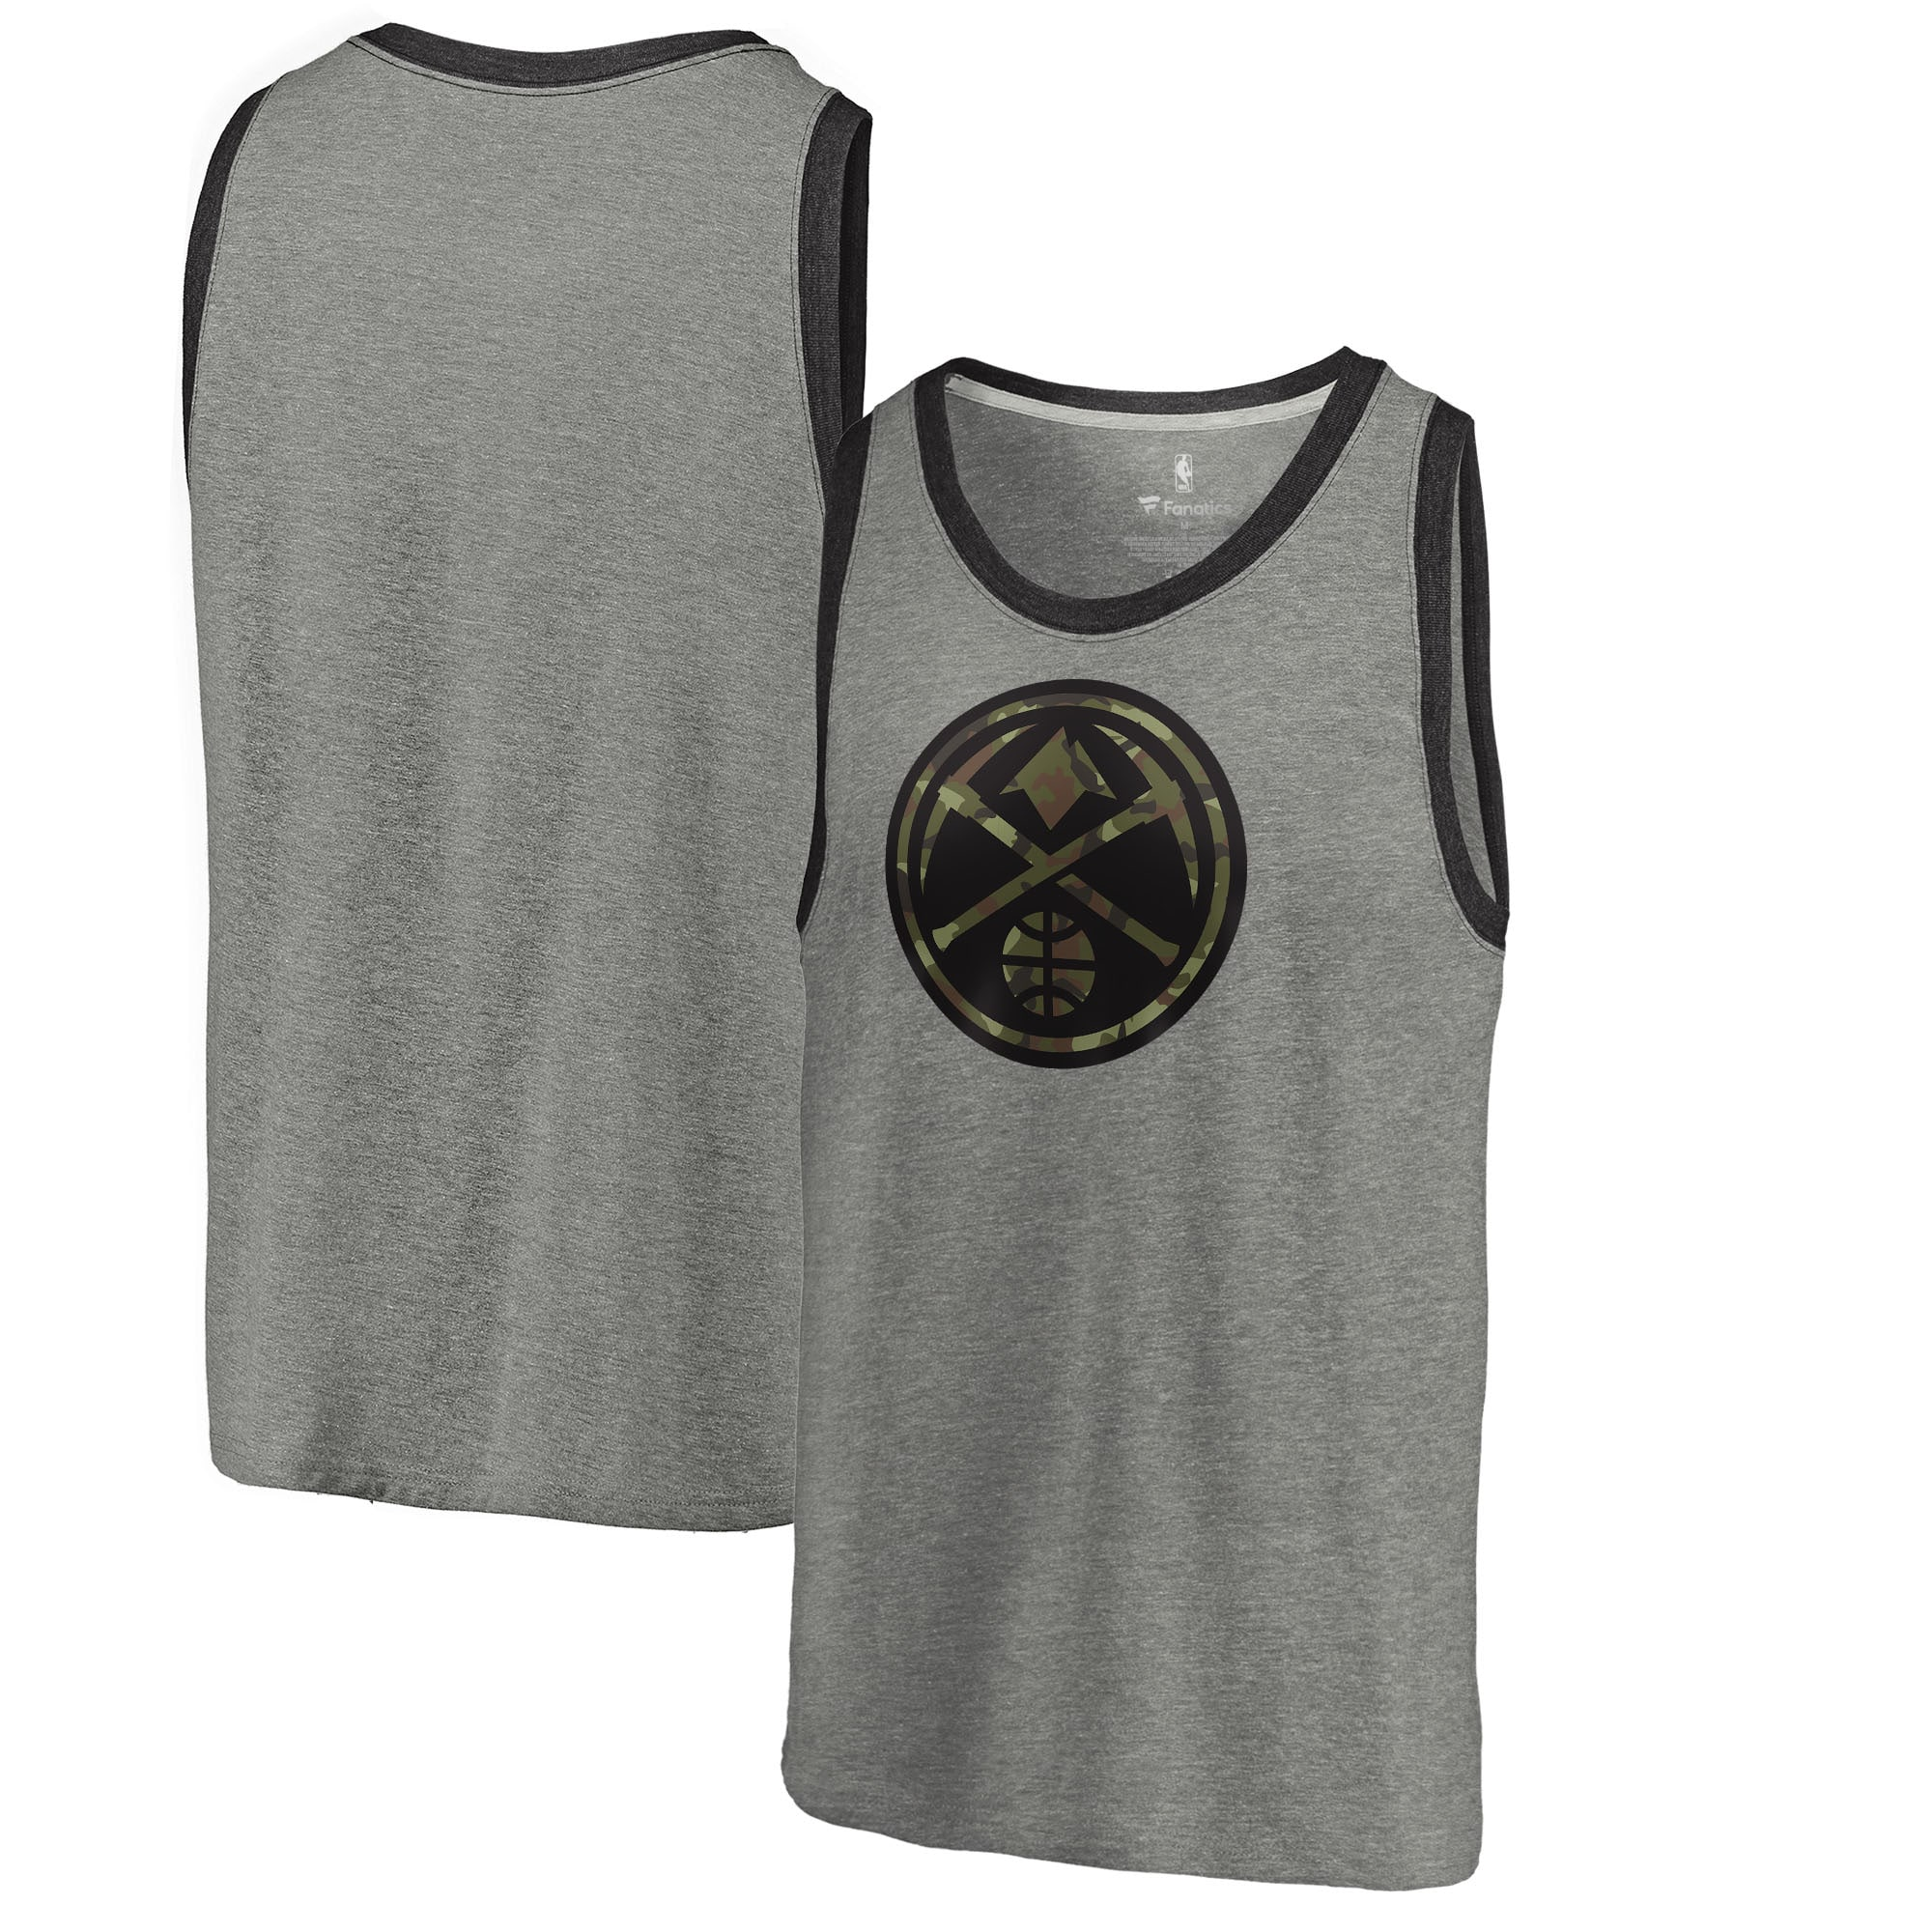 Denver Nuggets Fanatics Branded Camo Collection Prestige Tri-Blend Tank Top - Heather Gray